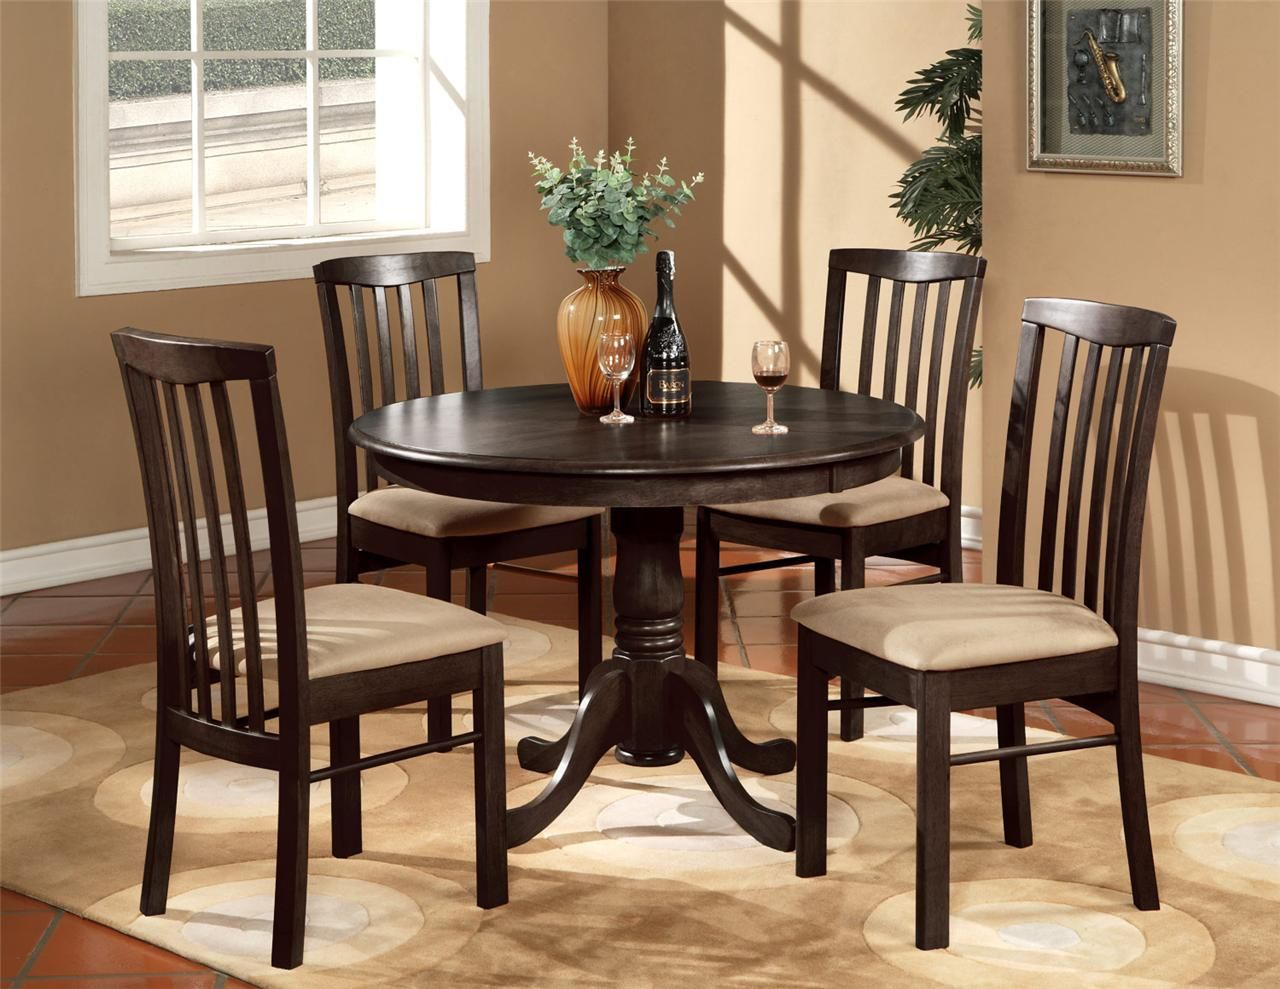 Dark Wood Round Counter Height Kitchen Table And 4 Chirs 42 Dinette Set Or Upholstered Chairs